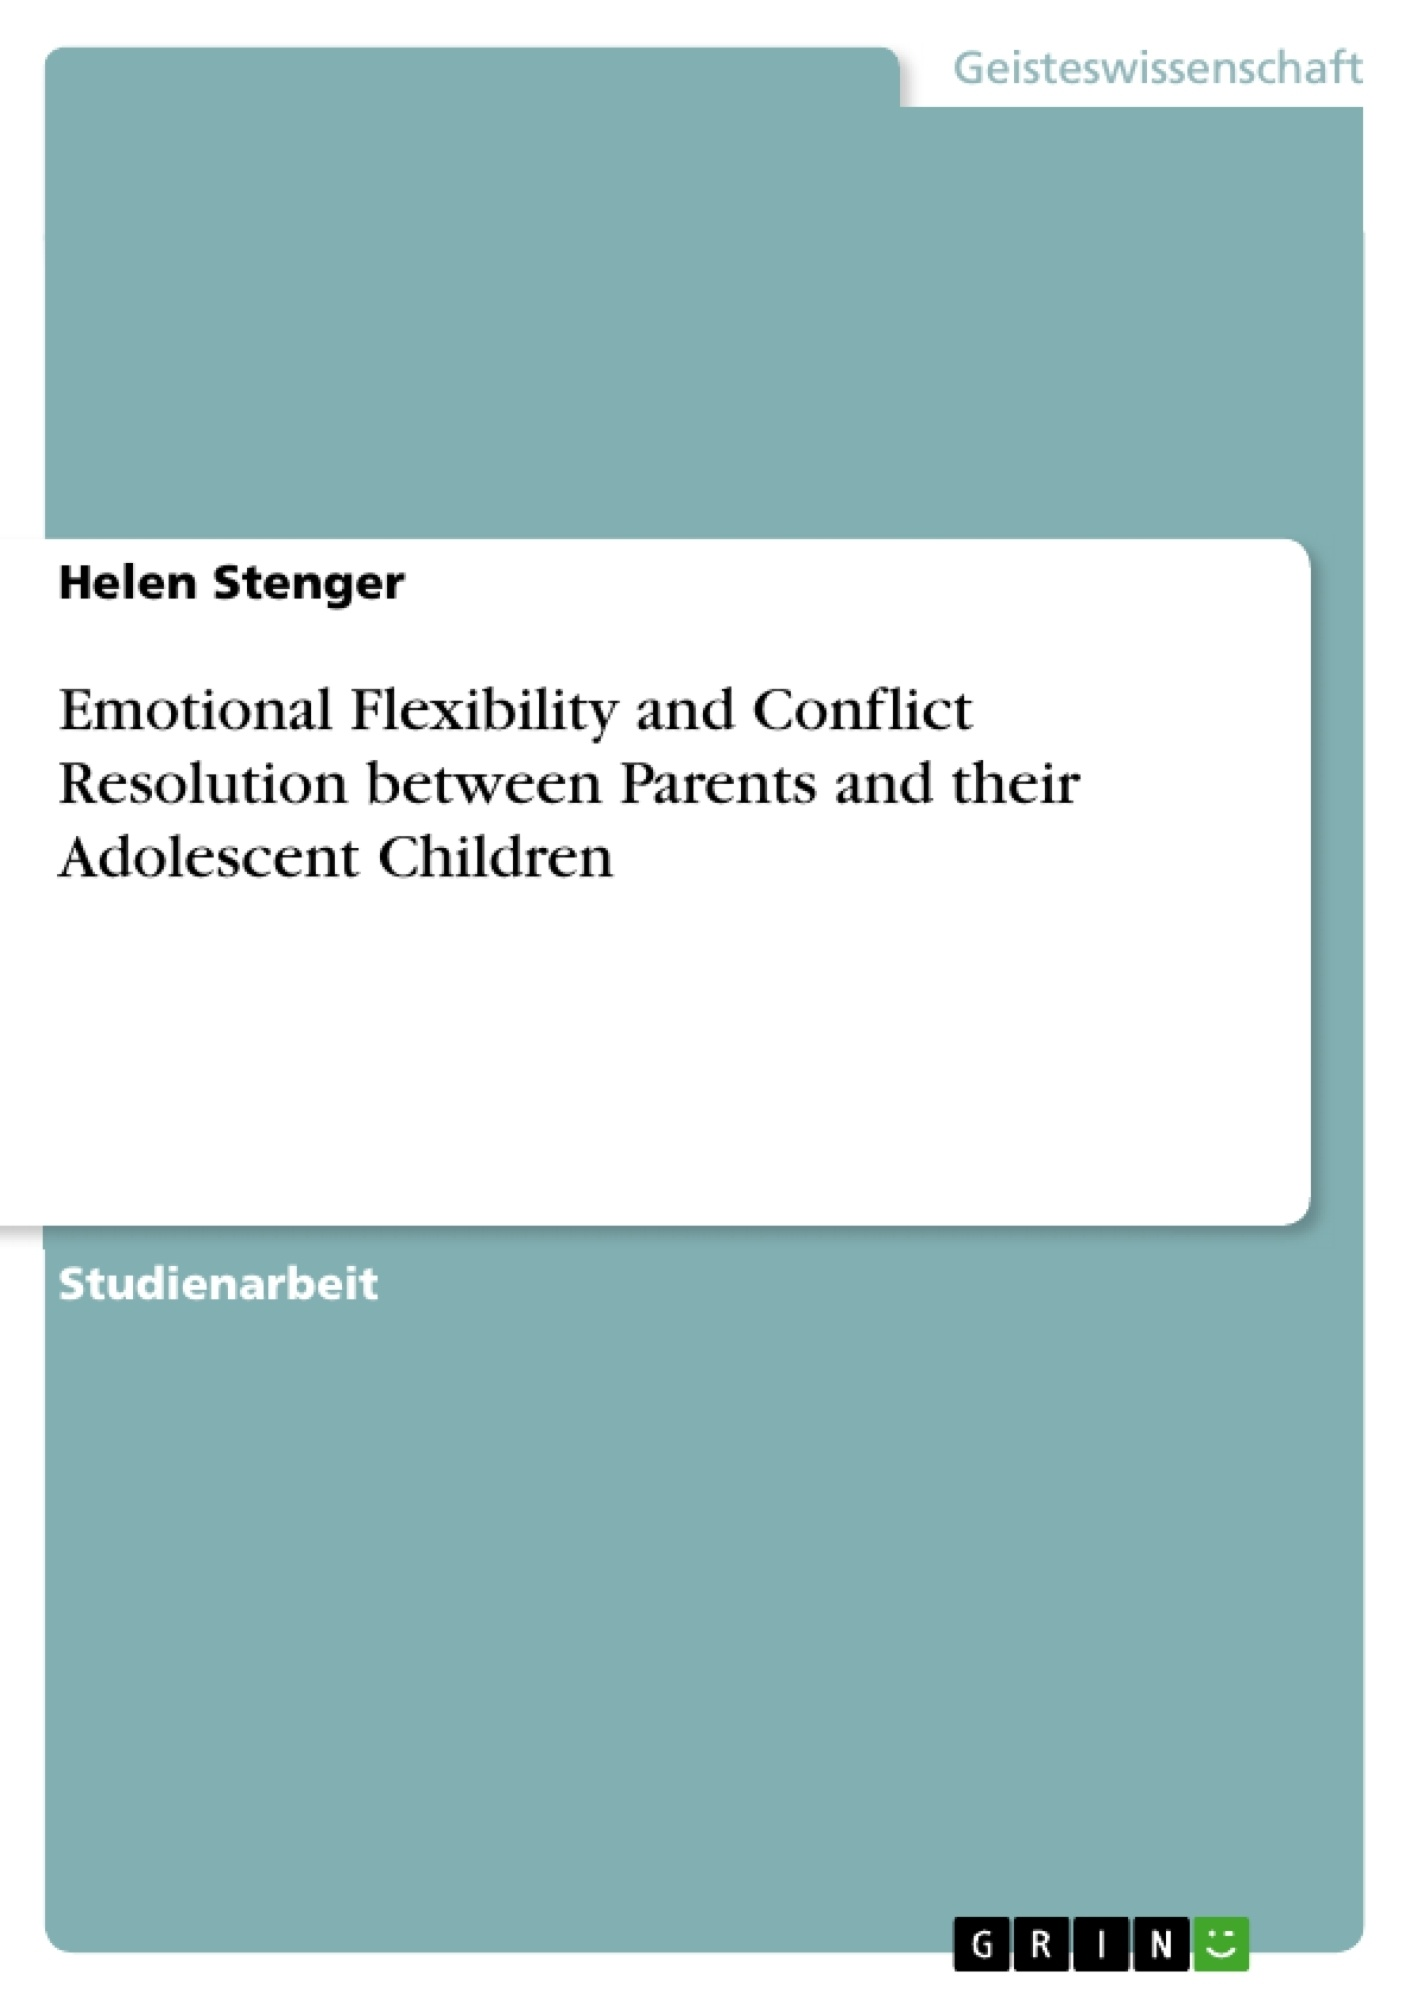 Titel: Emotional Flexibility and Conflict Resolution between Parents and their Adolescent Children